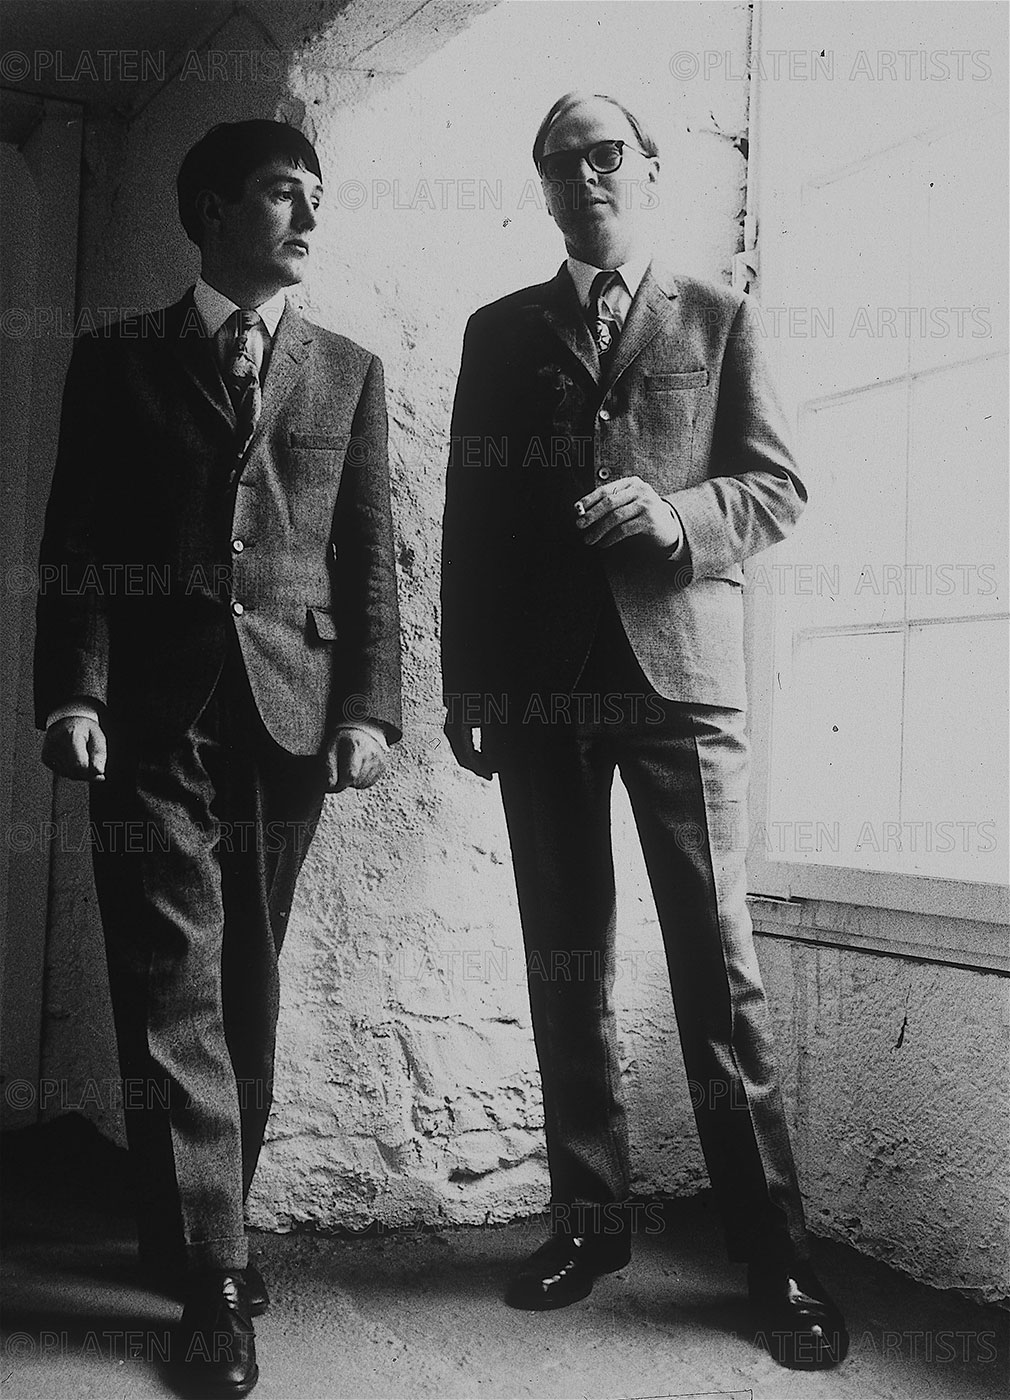 Gilbert&George, The Living Sculptures, unzertrennlich, Kassel, 1972